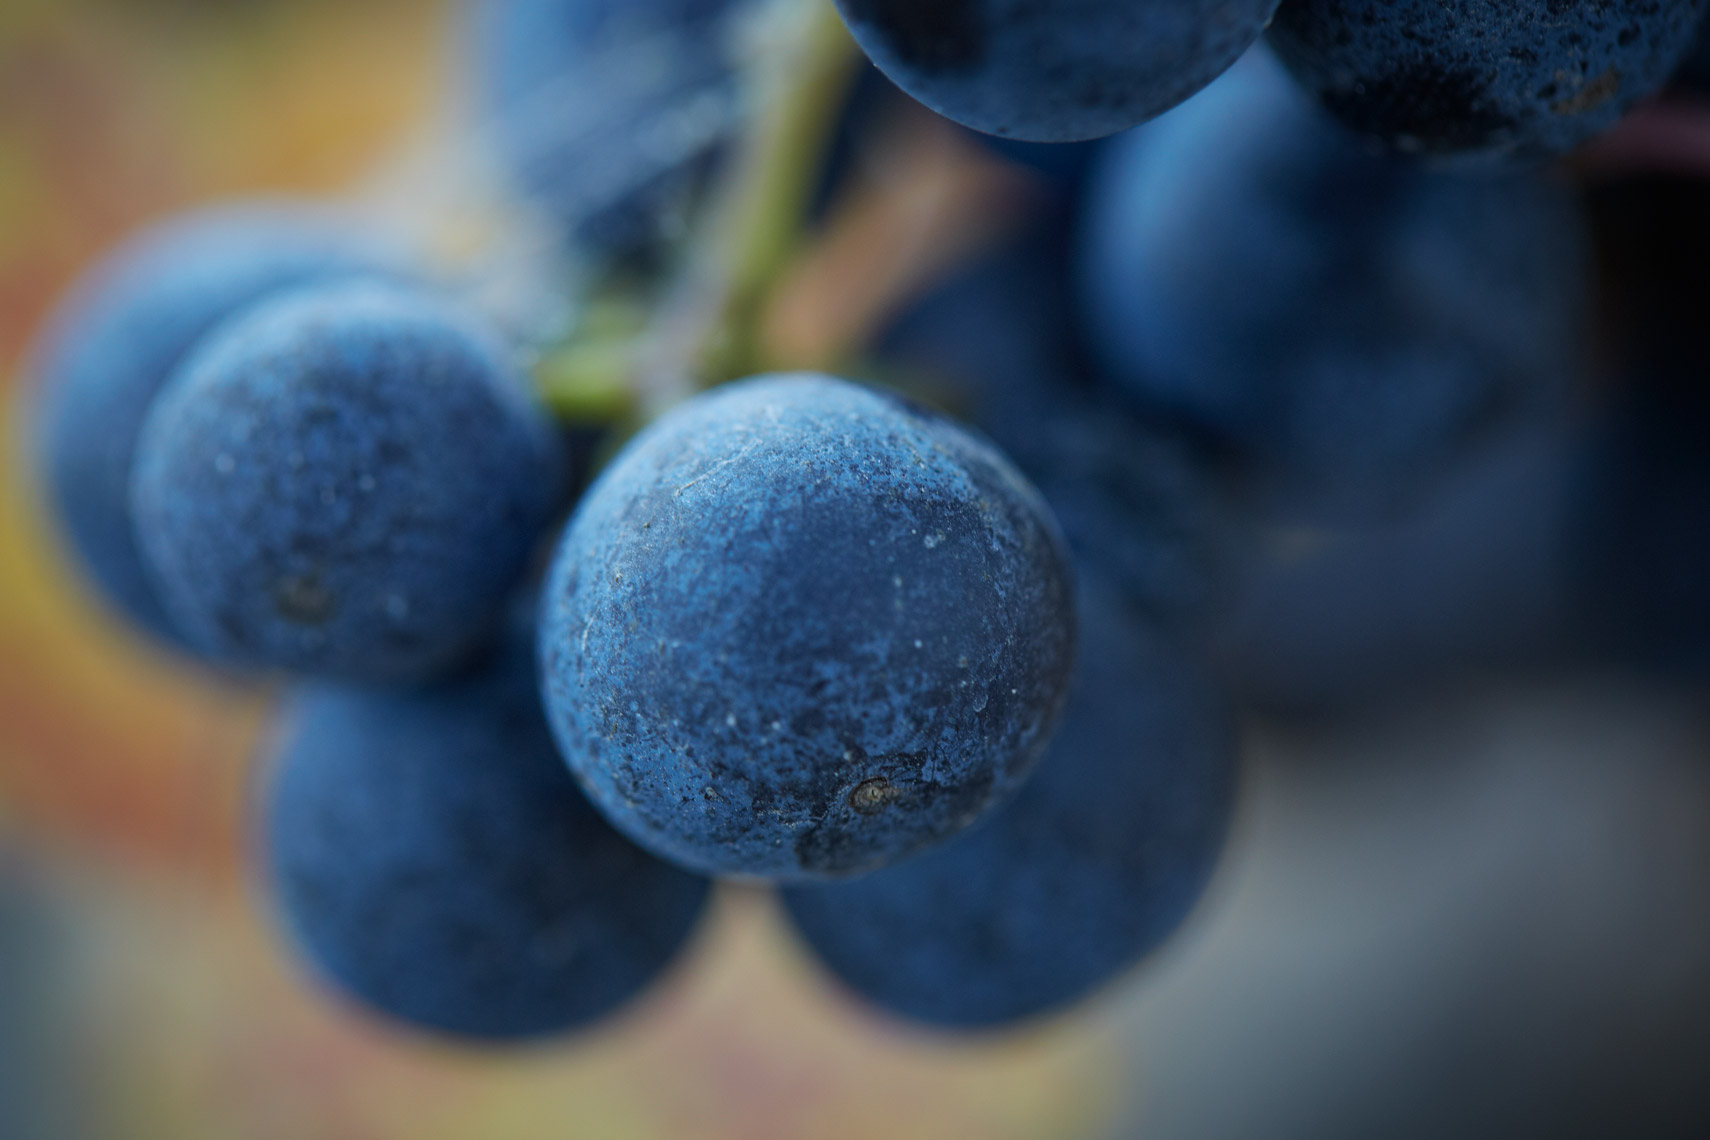 AlanCampbellPhotography, close up of grape